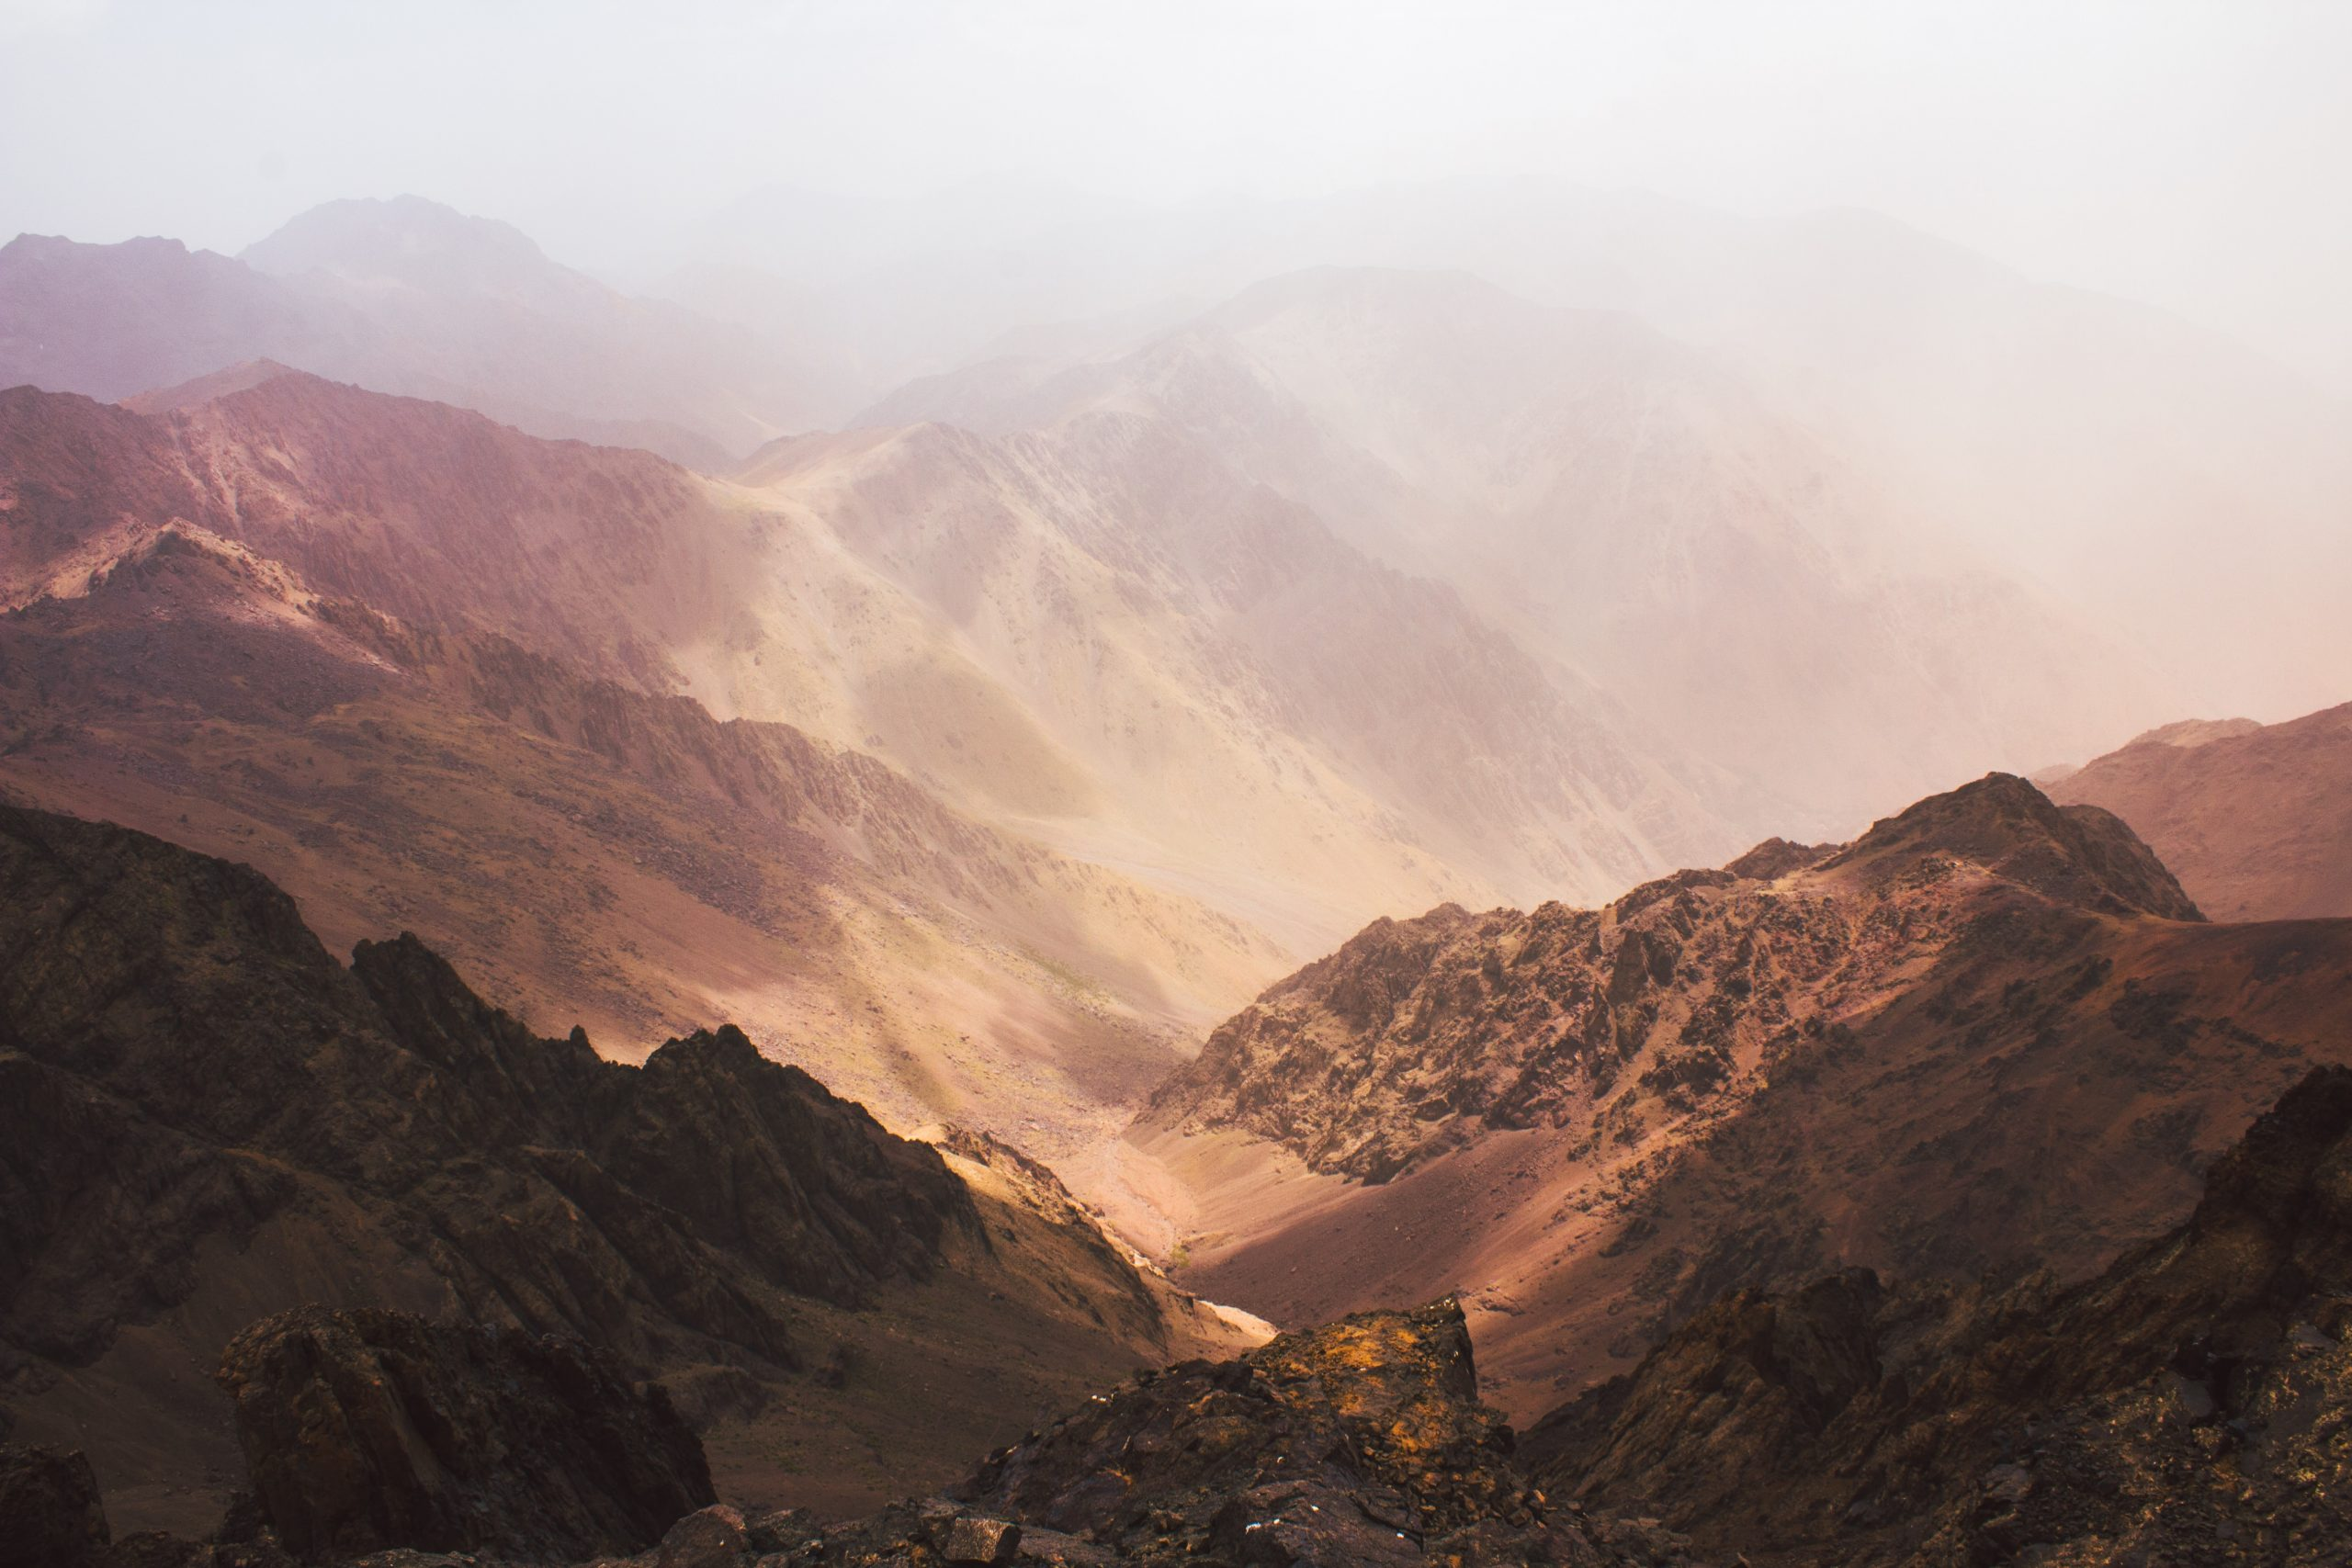 gallery image for The Highest Peak of North Africa